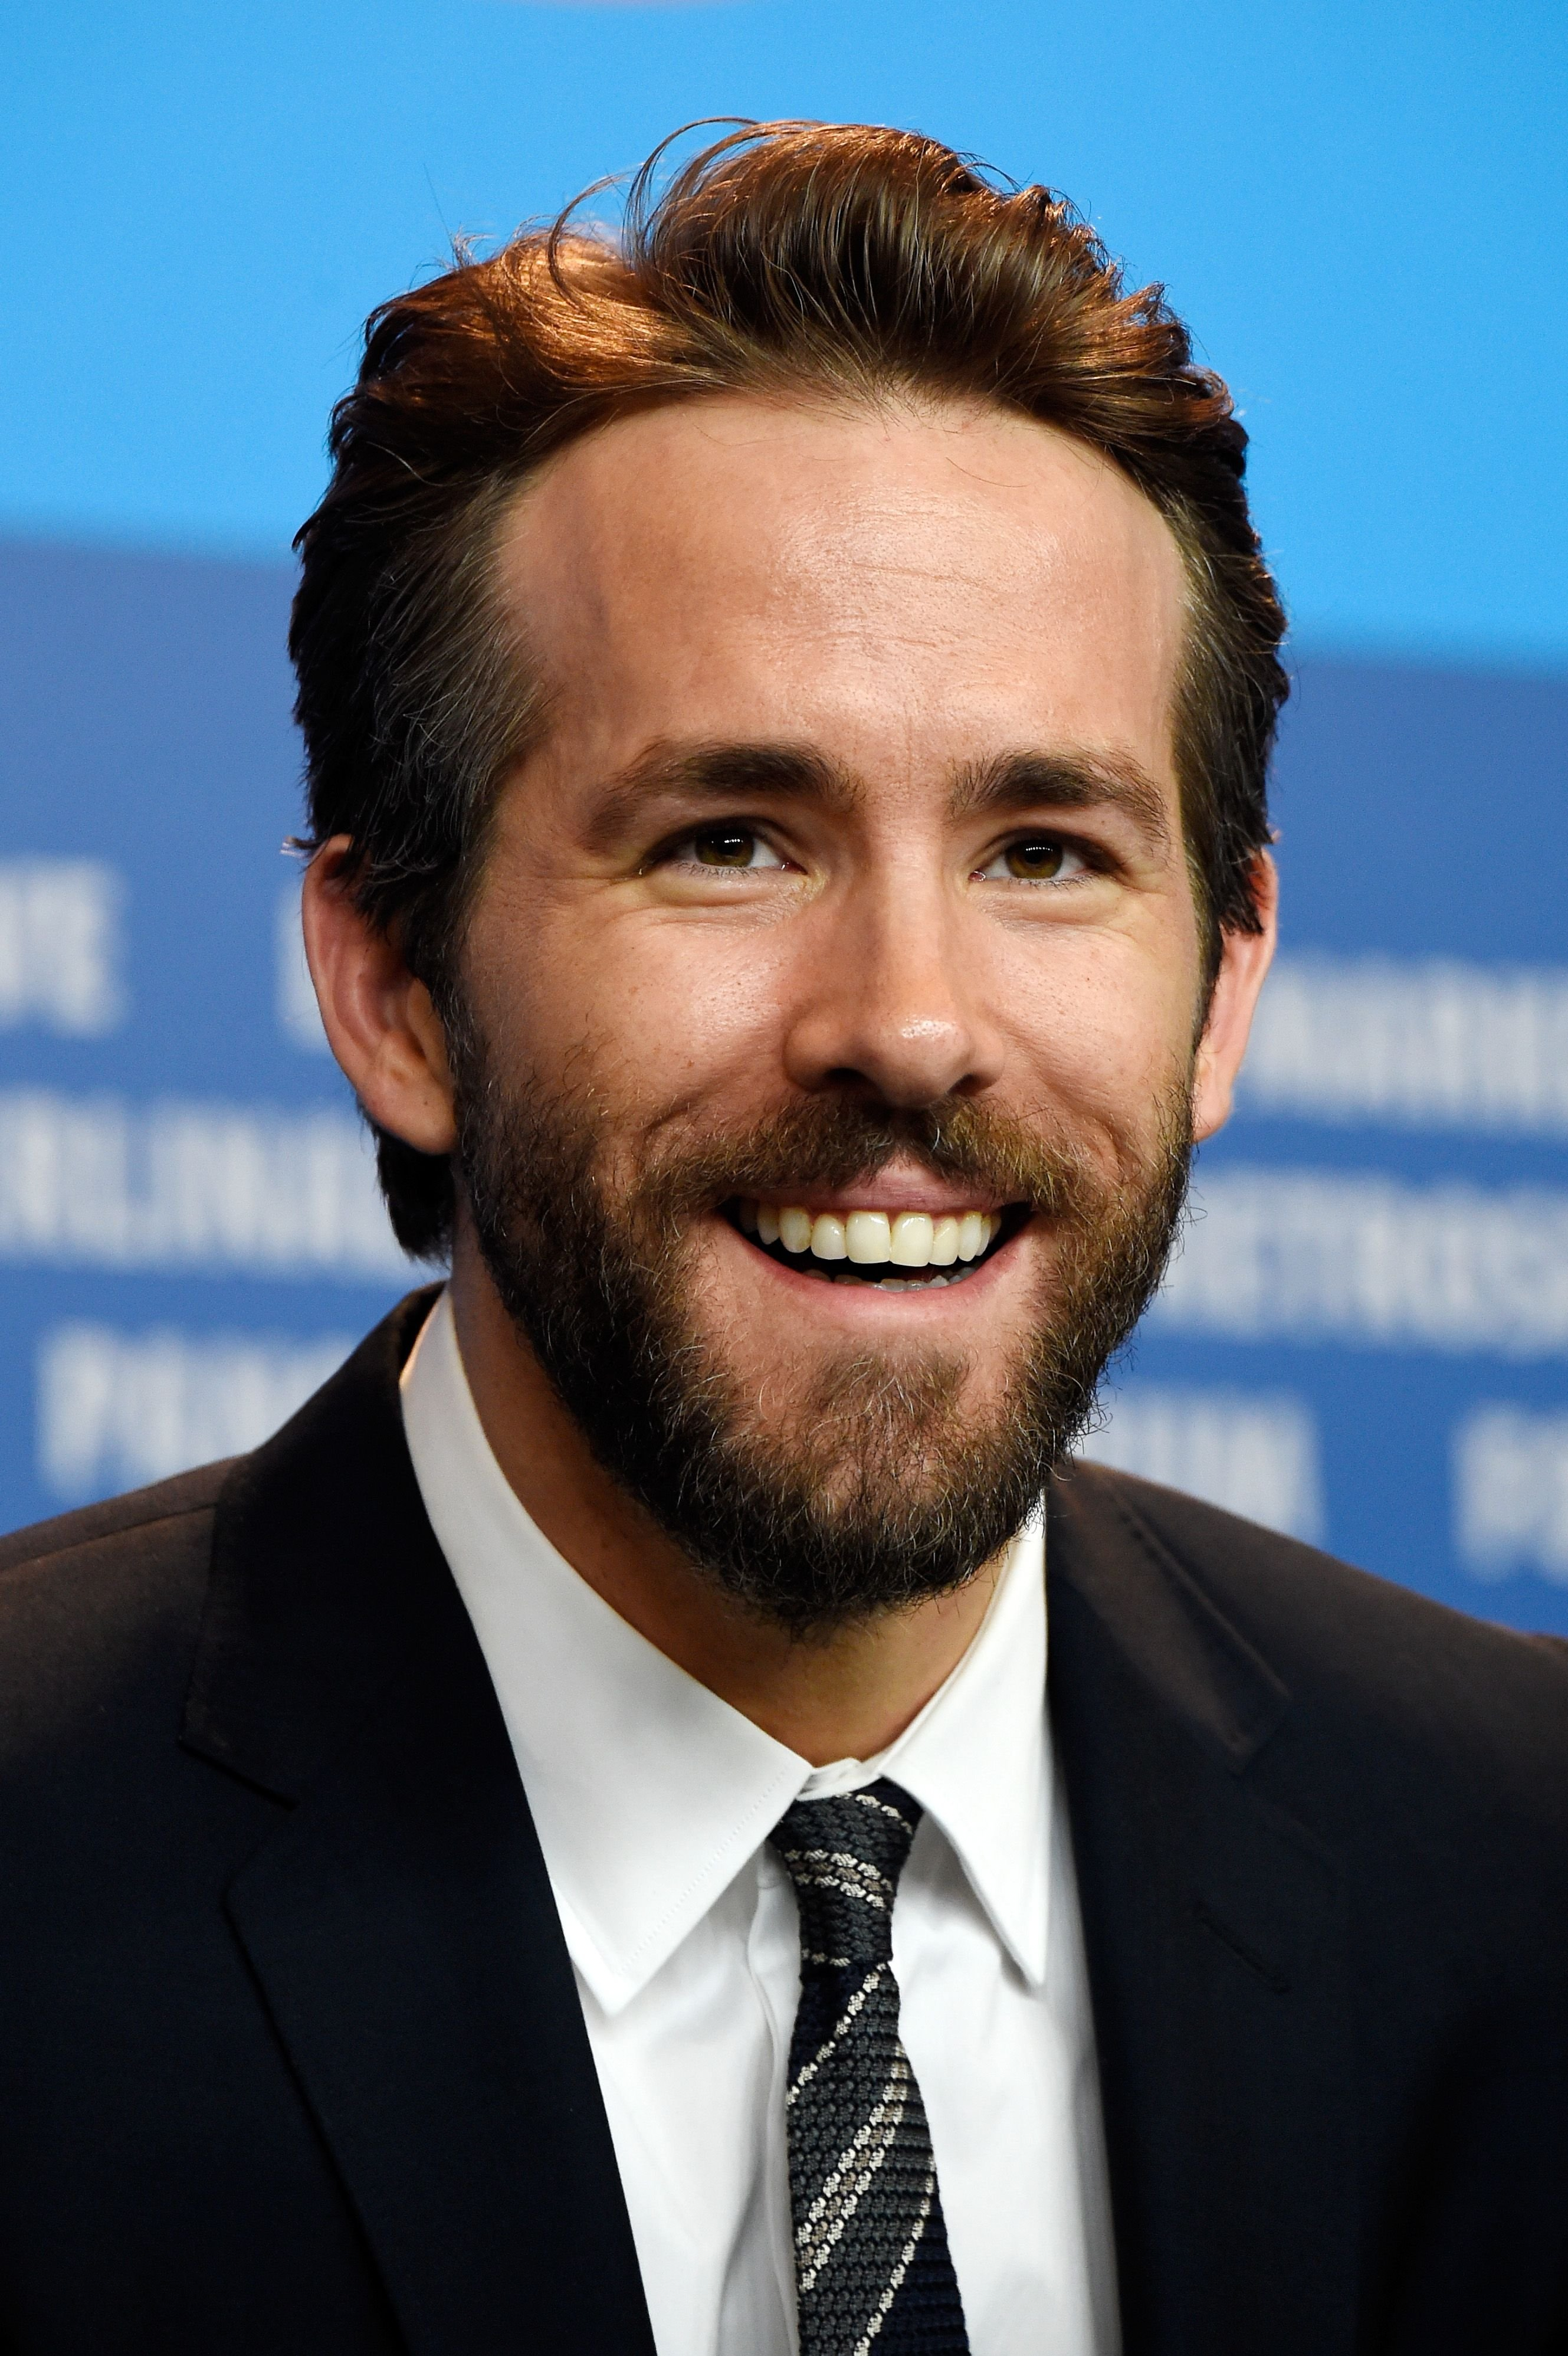 Ryan Reynolds at the 'Woman in Gold' press conference during the 65th Berlinale International Film Festival at Grand Hyatt Hotel on February 9, 2015 in Berlin, Germany | Photo: Getty Images